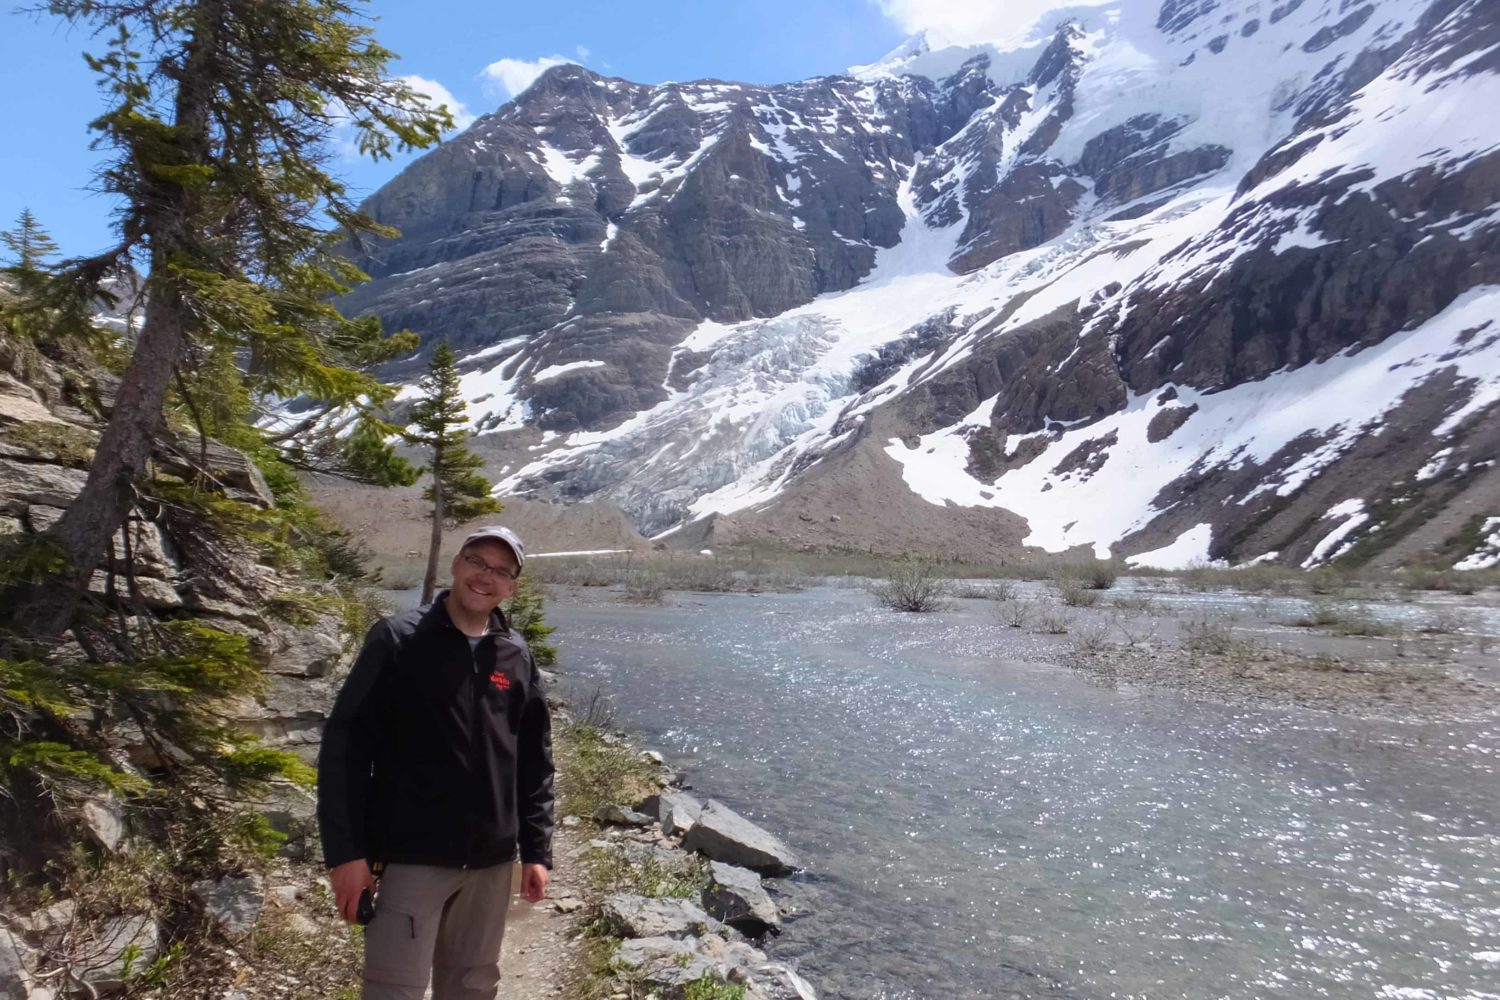 Autor Jörg am Berg Lake am Mount Robson